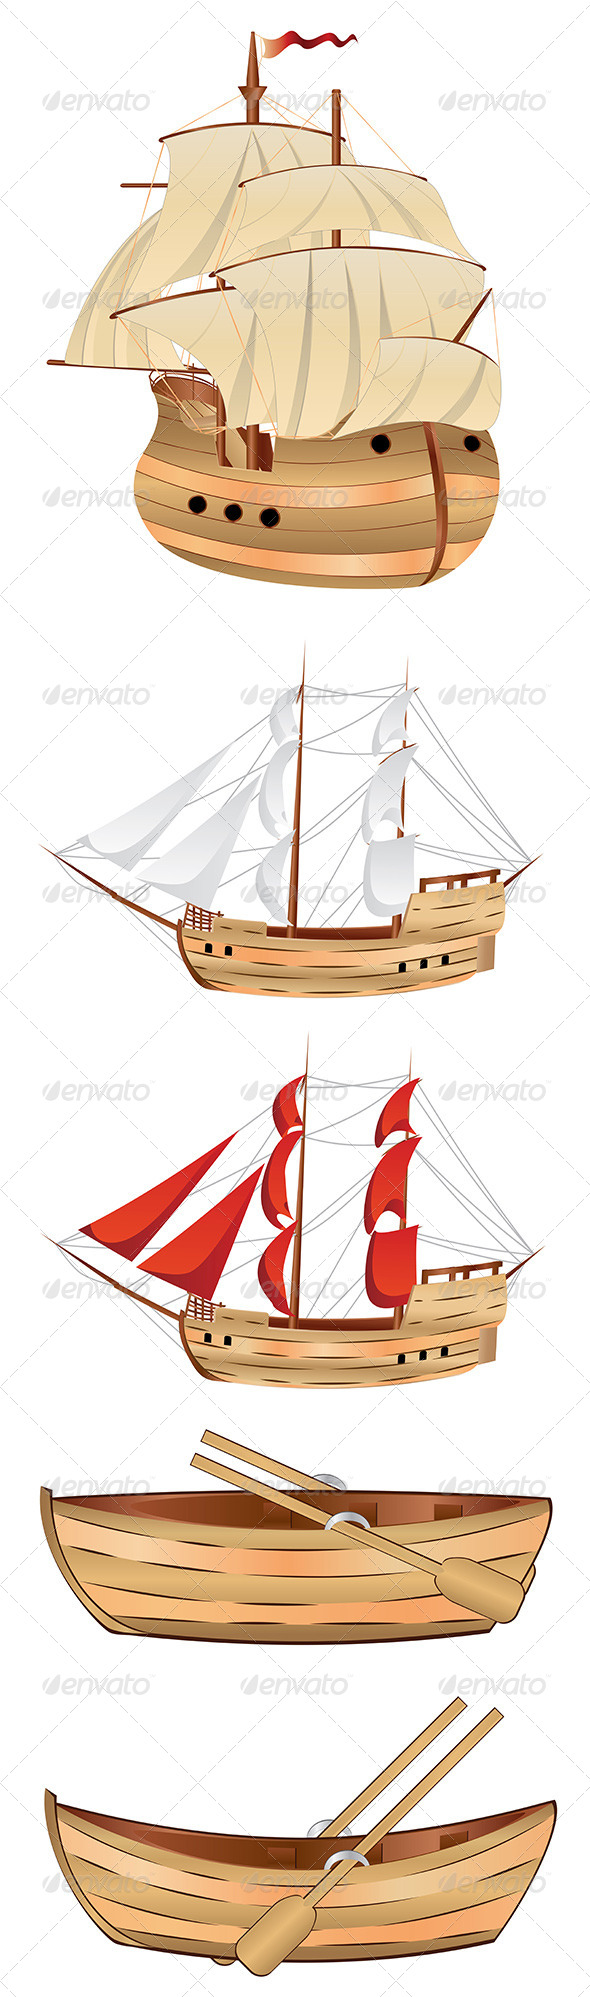 GraphicRiver Old Sailing Ship 7699459